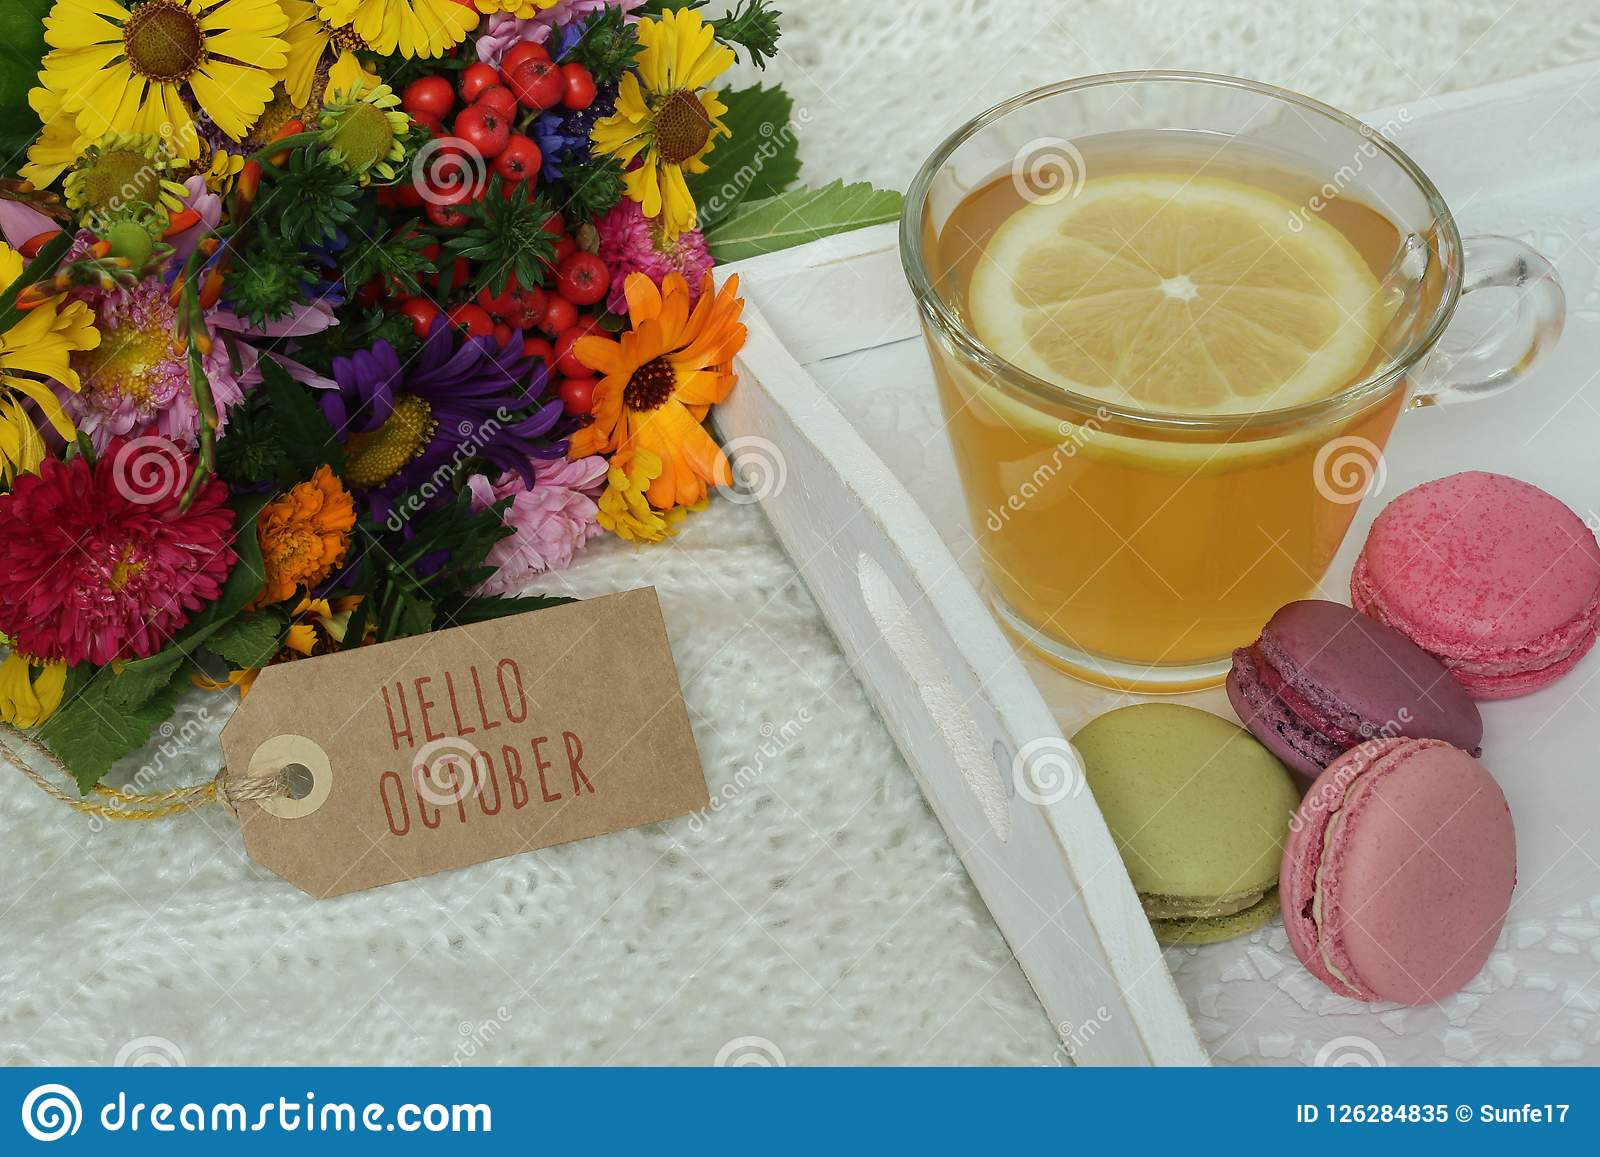 Hello october text on label autumn flowers and cup of tea stock download hello october text on label autumn flowers and cup of tea stock image mightylinksfo